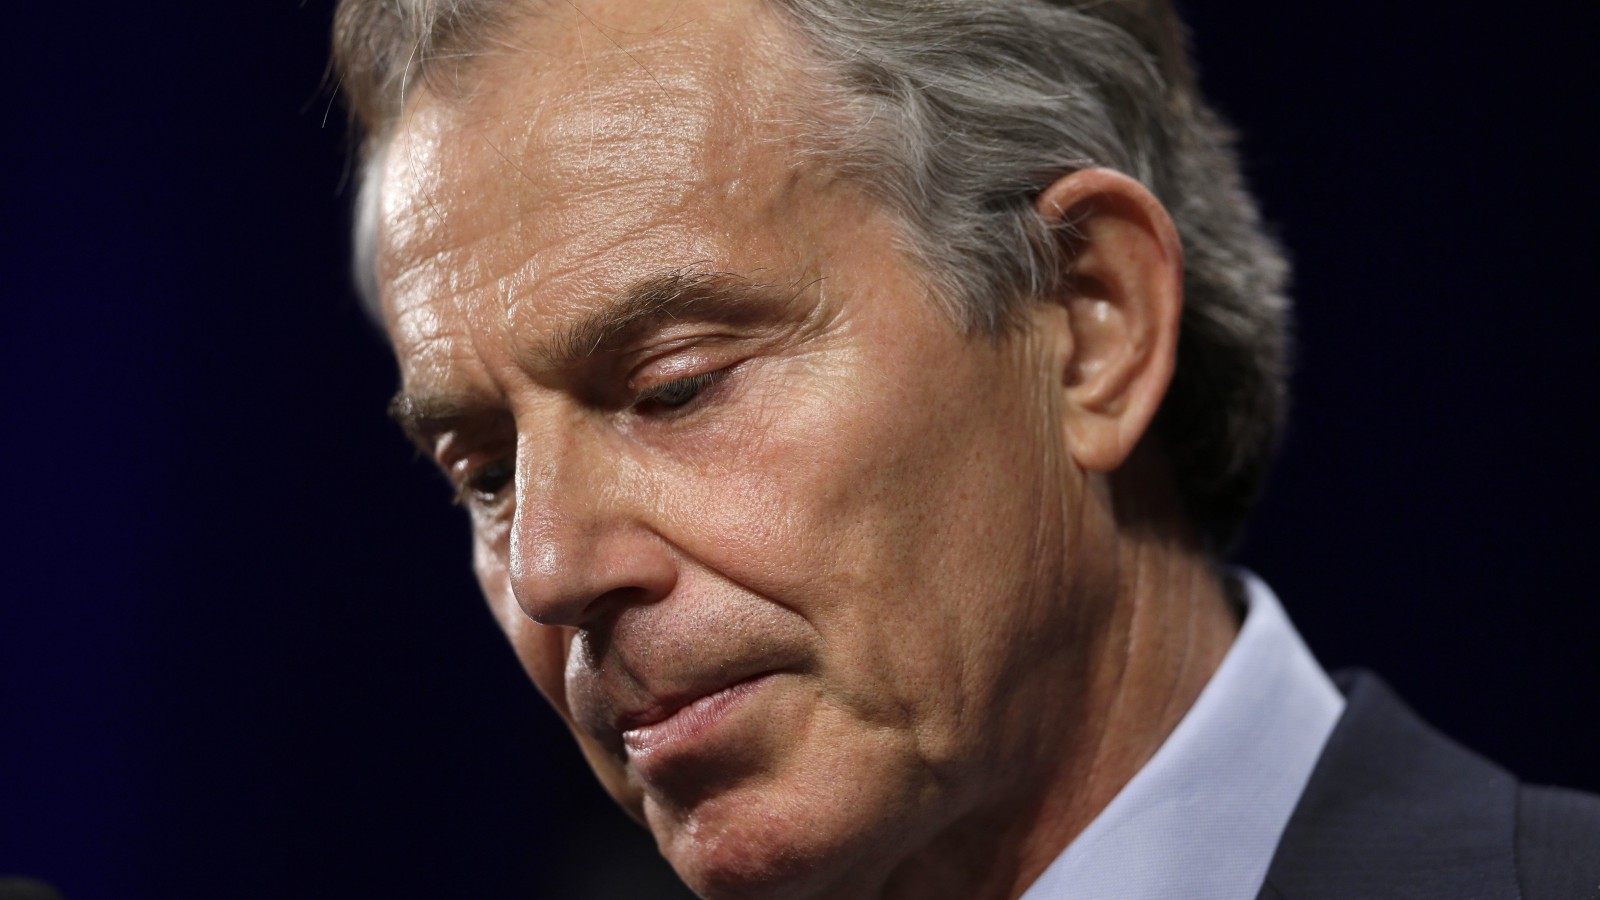 Former British Prime Minister Tony Blair pauses in his remarks about the late former British Prime Minister Margaret Thatcher at Lafayette College.